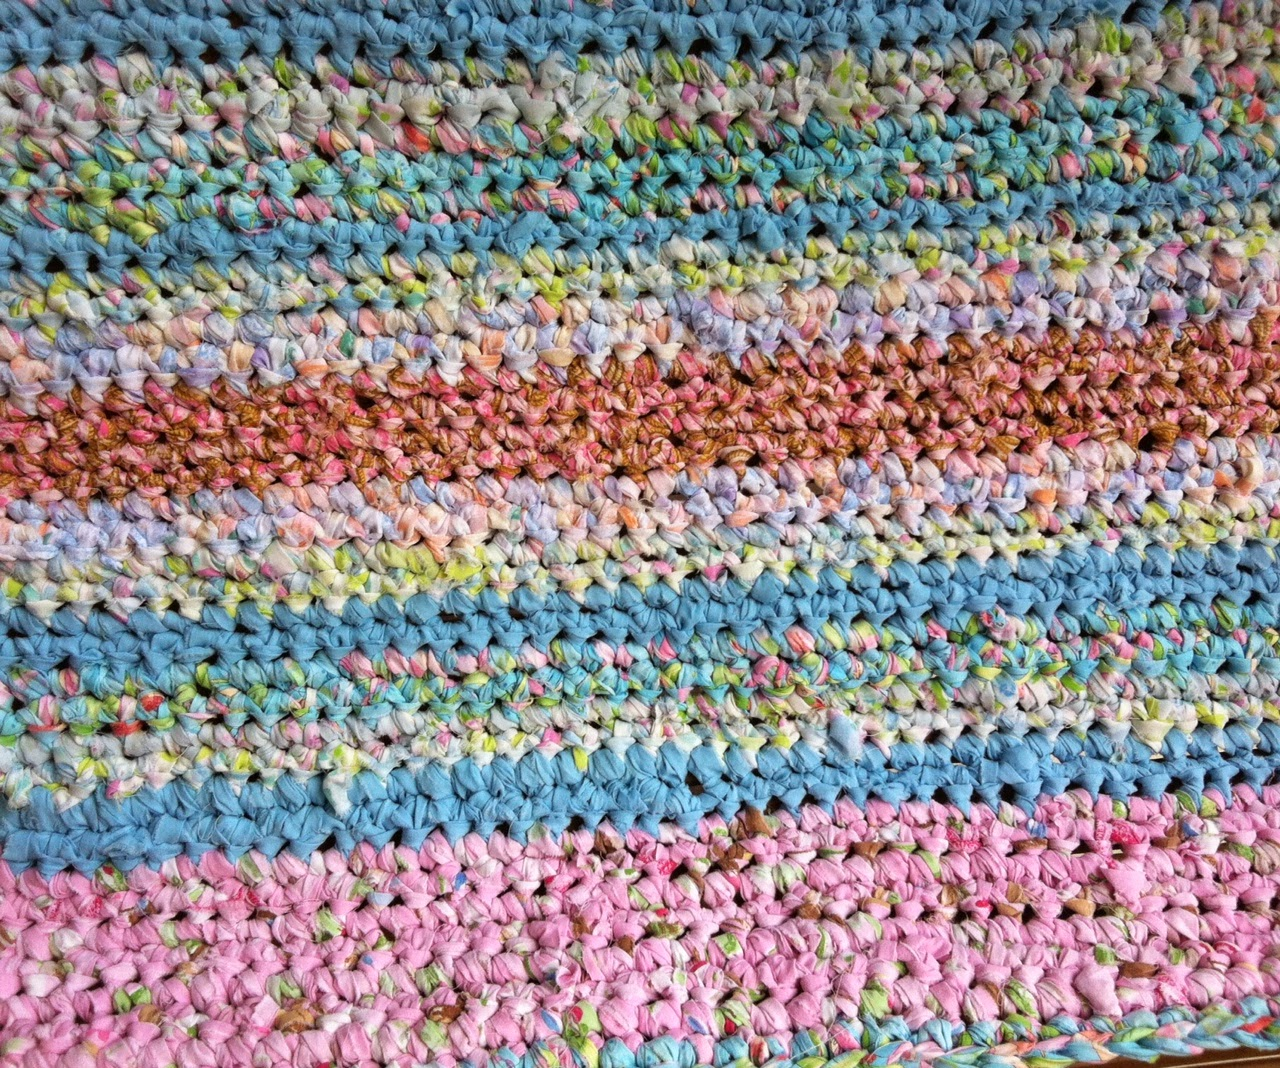 Nifty Thrifty Bits: How To Make A Rag Rug